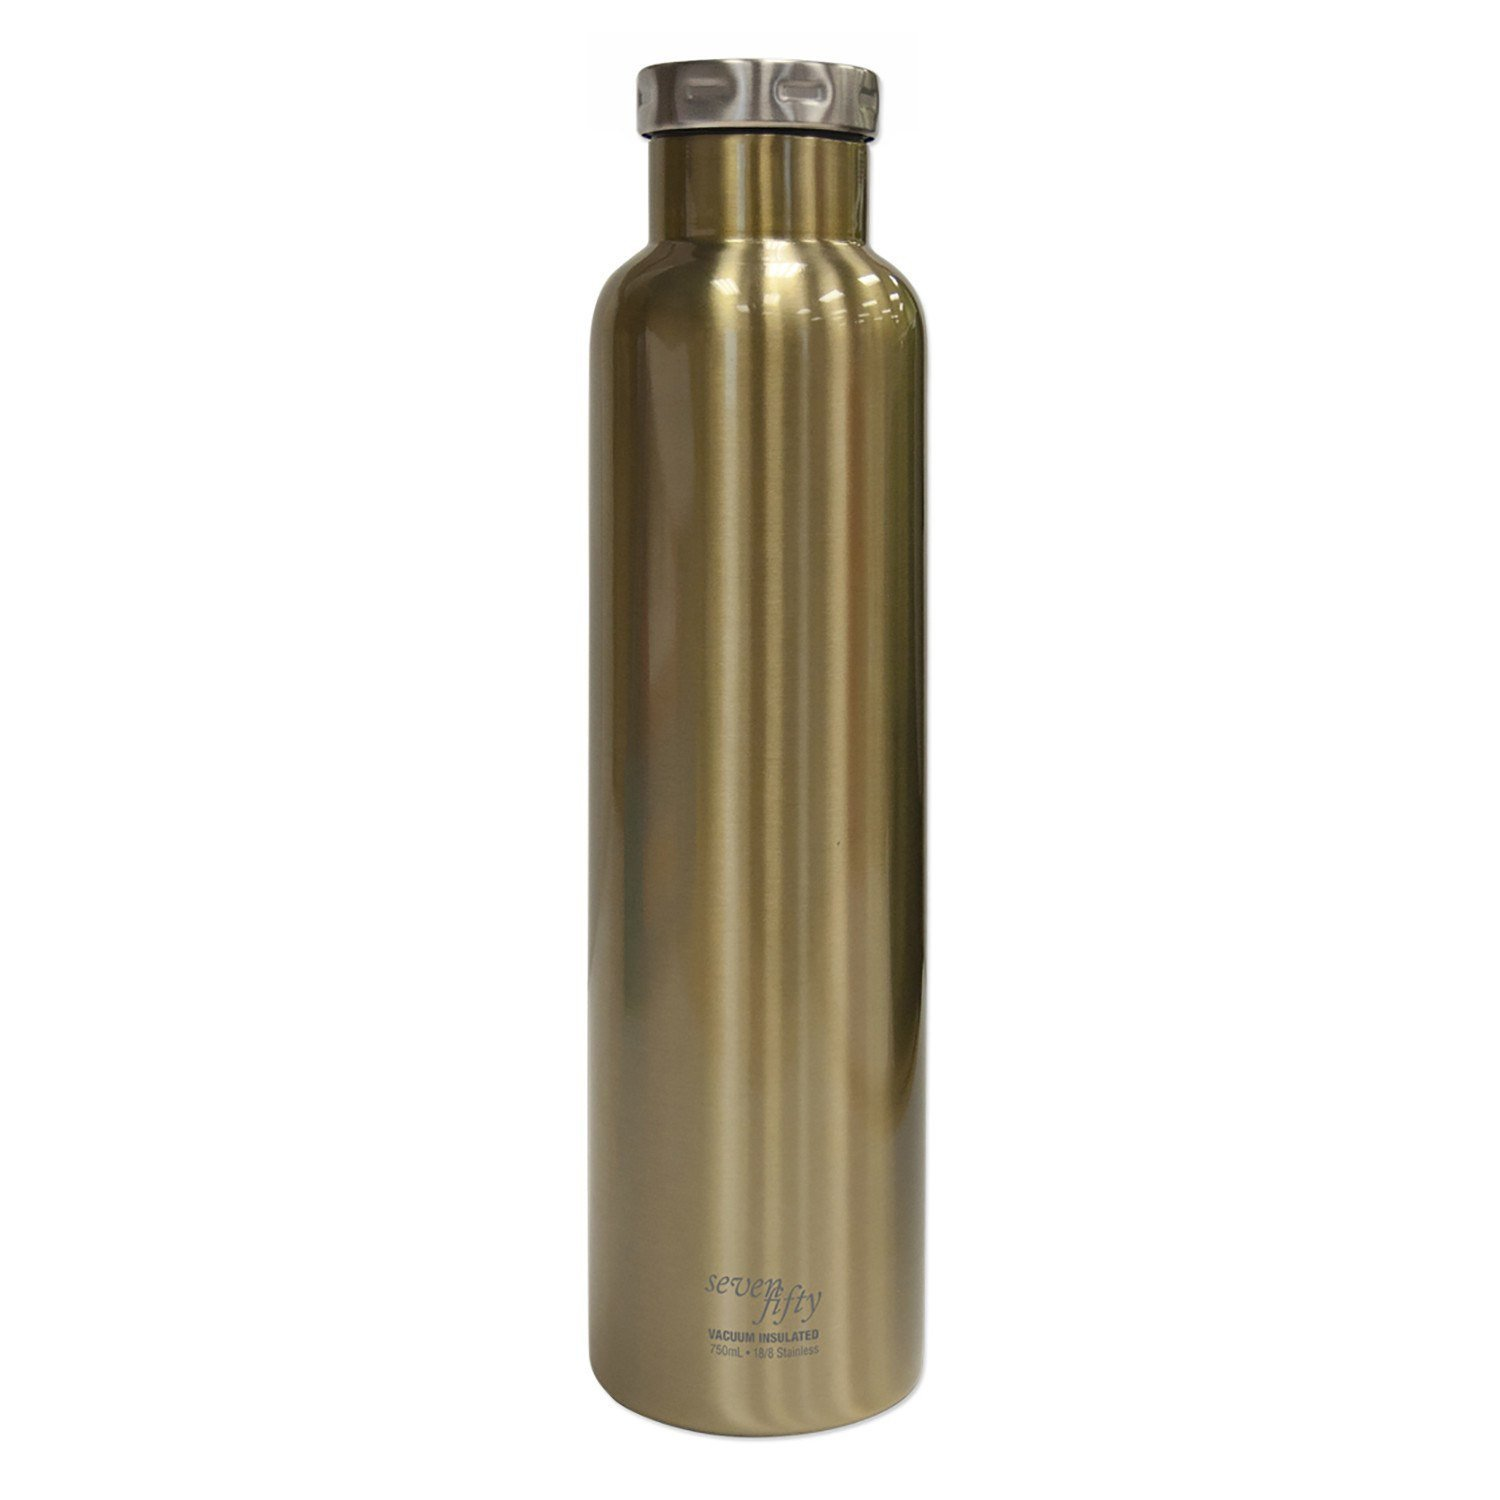 Fifty/Fifty Seven Fifty Double Wall Vacuum Insulated Wine Growler, 18/8 Stainless Steel, 750ml, Champagne Gold